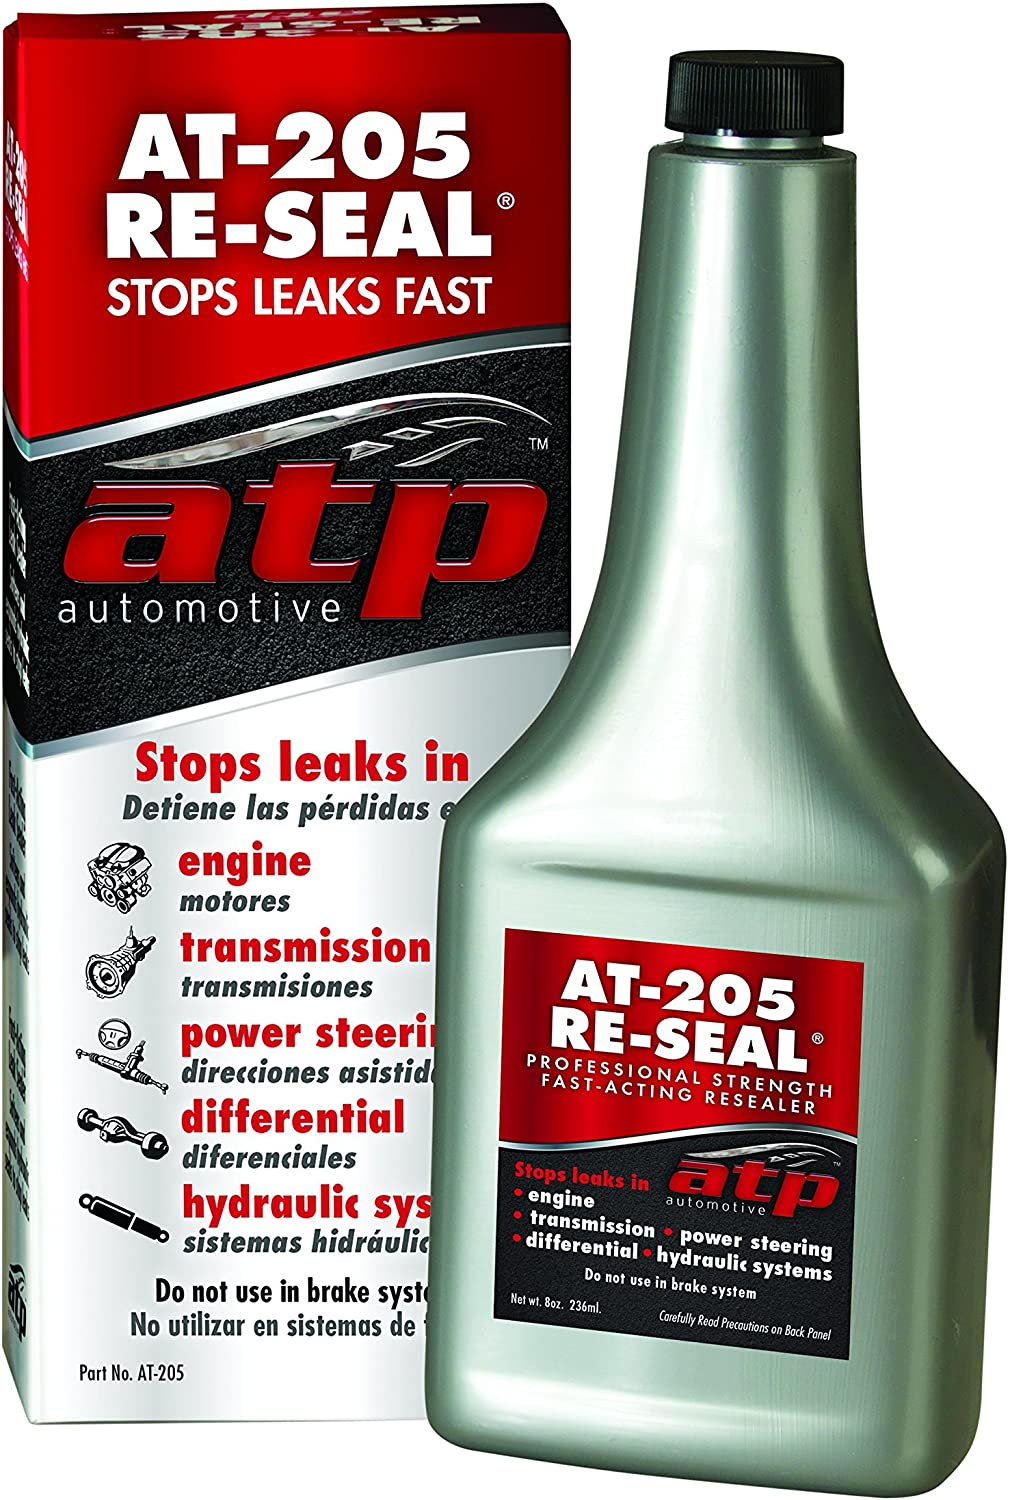 ATP Automotive AT-205 Re-Seal